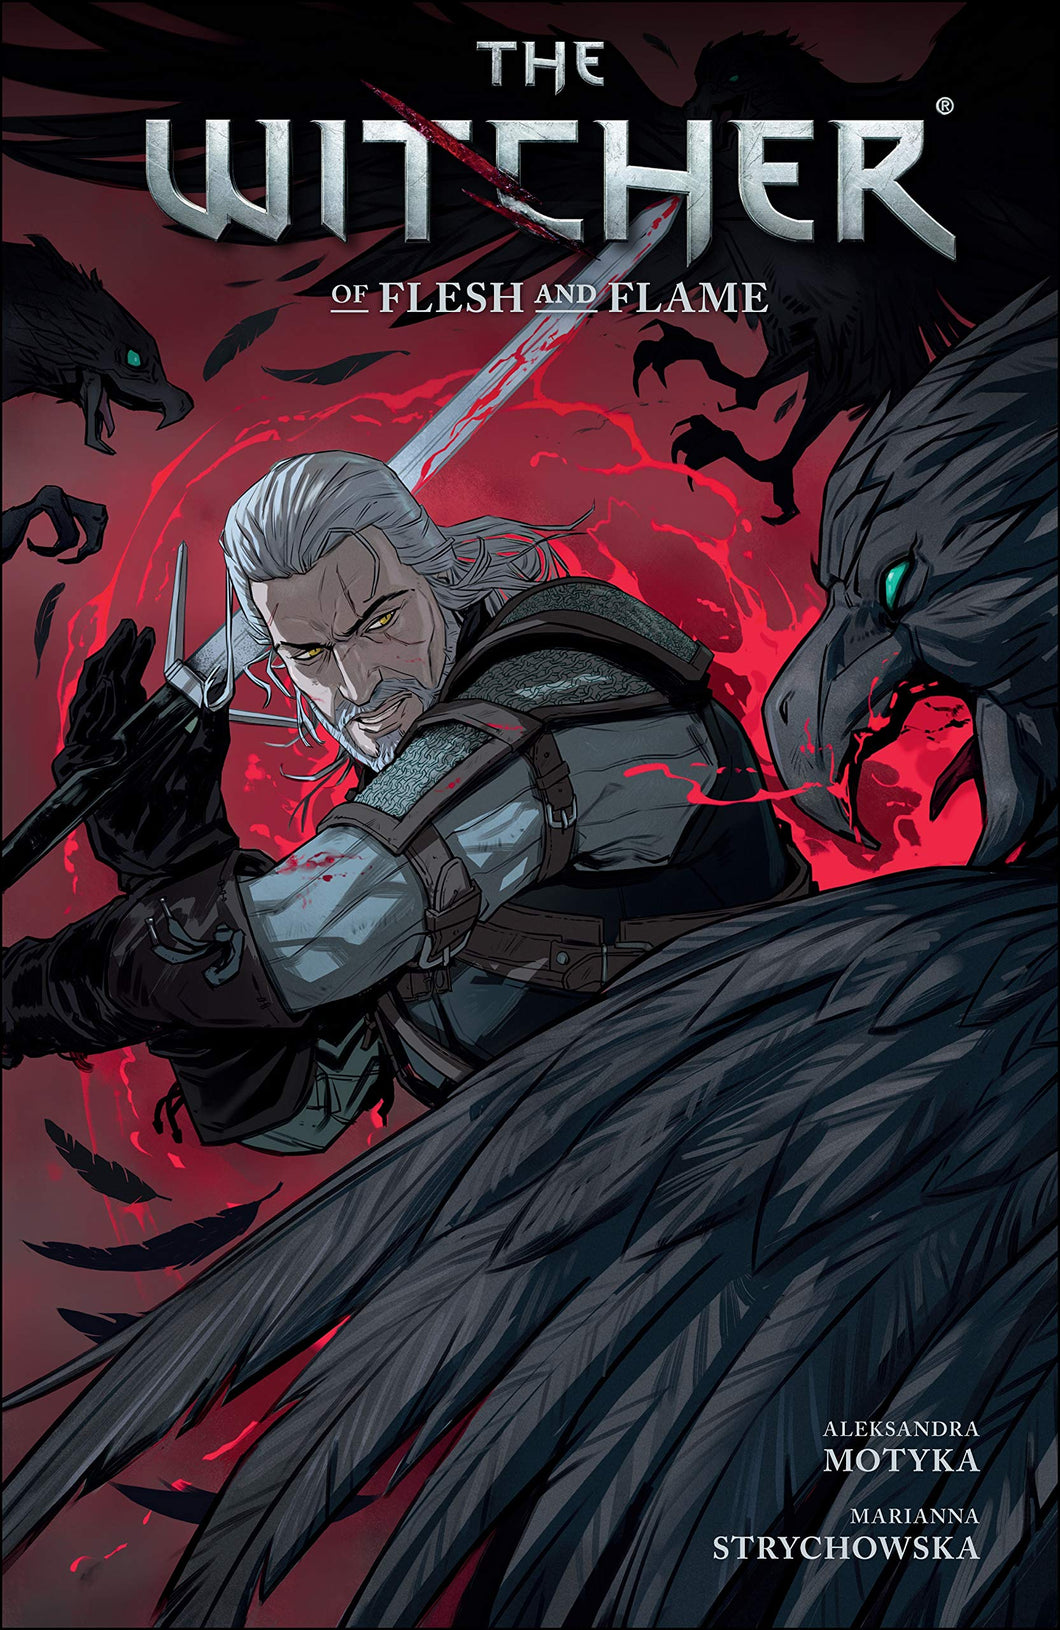 The Witcher Volume 4: Of Flesh and Flame (TPB) (2019)